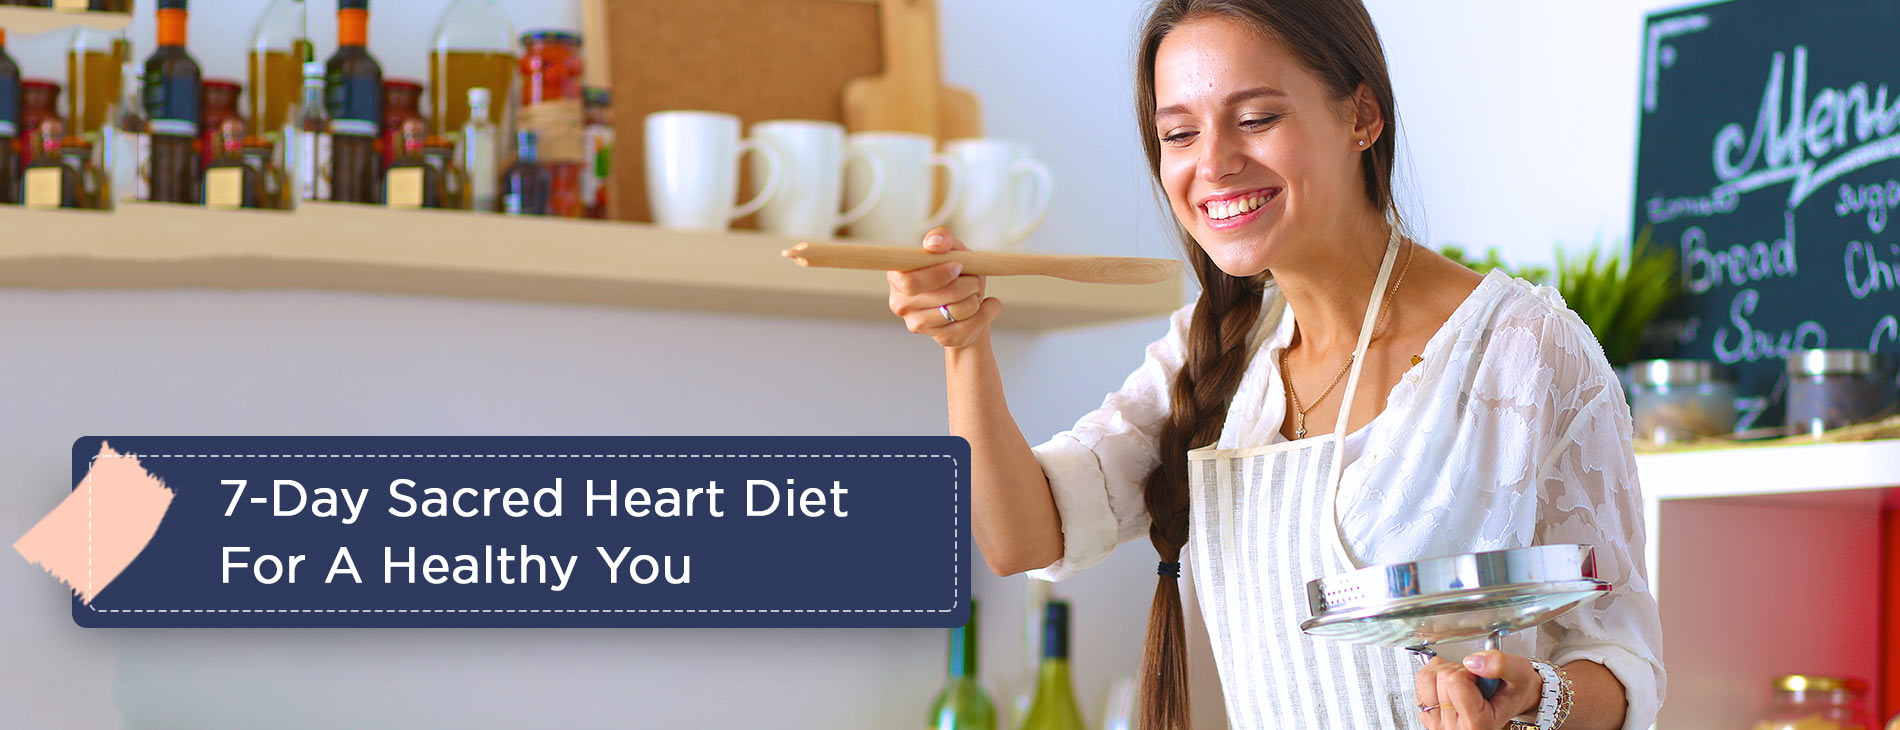 7-Day-Sacred-Heart-Diet-For-A-Healthy-You